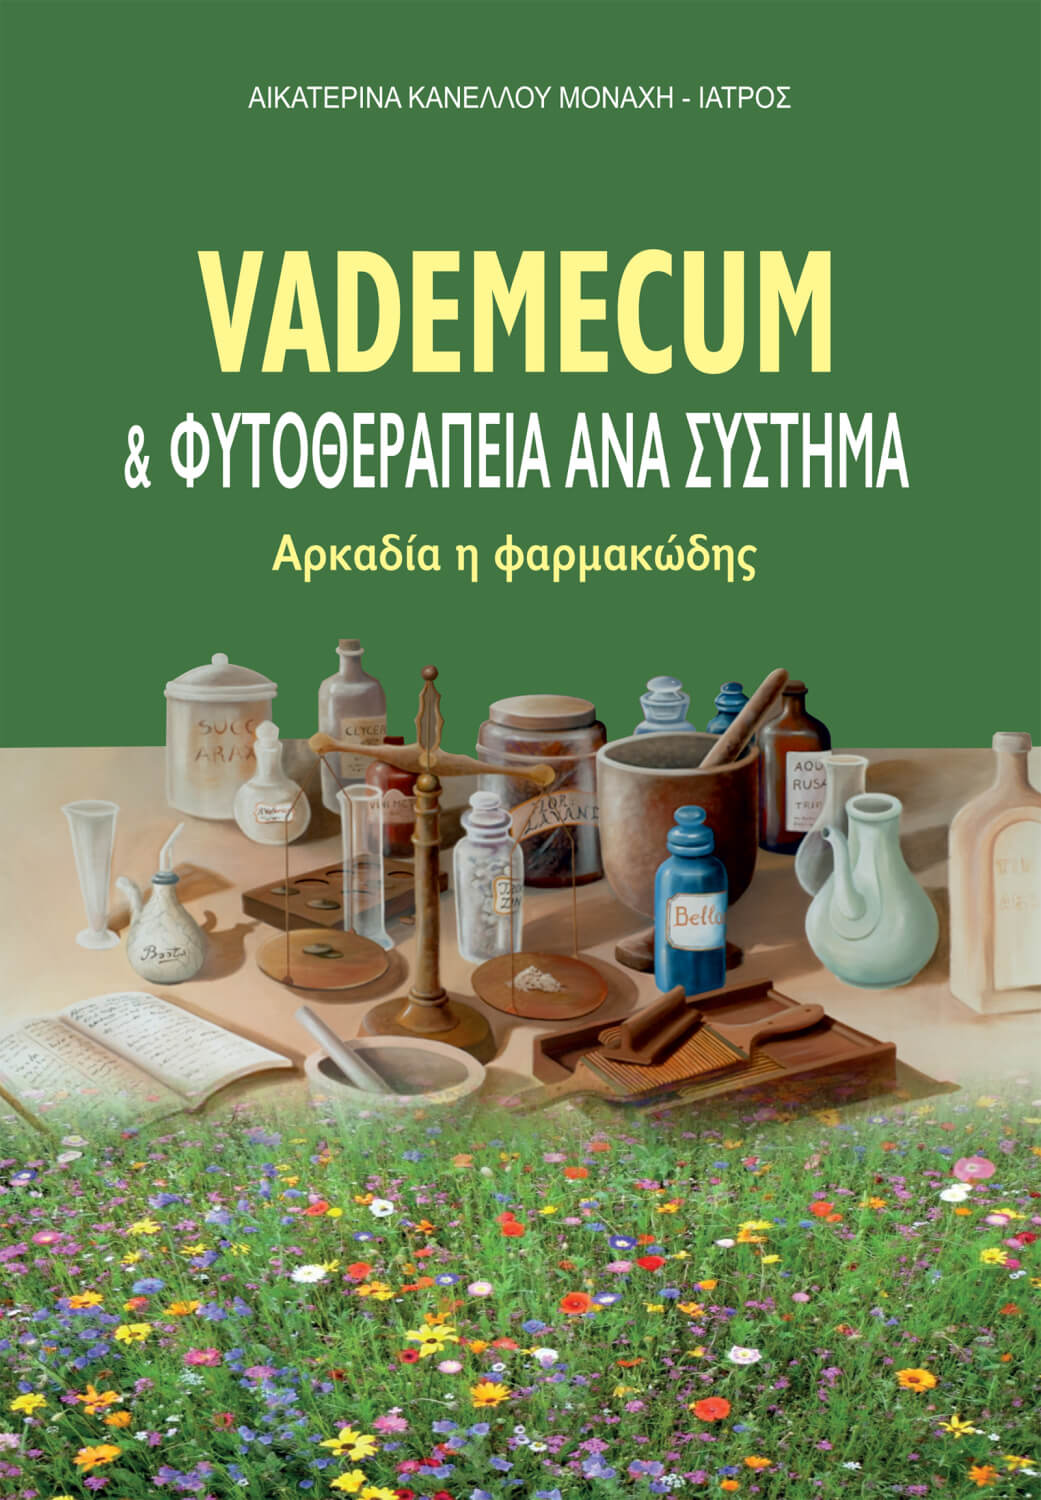 Vademecum and Phytotherapy per System - greek_cover-epub